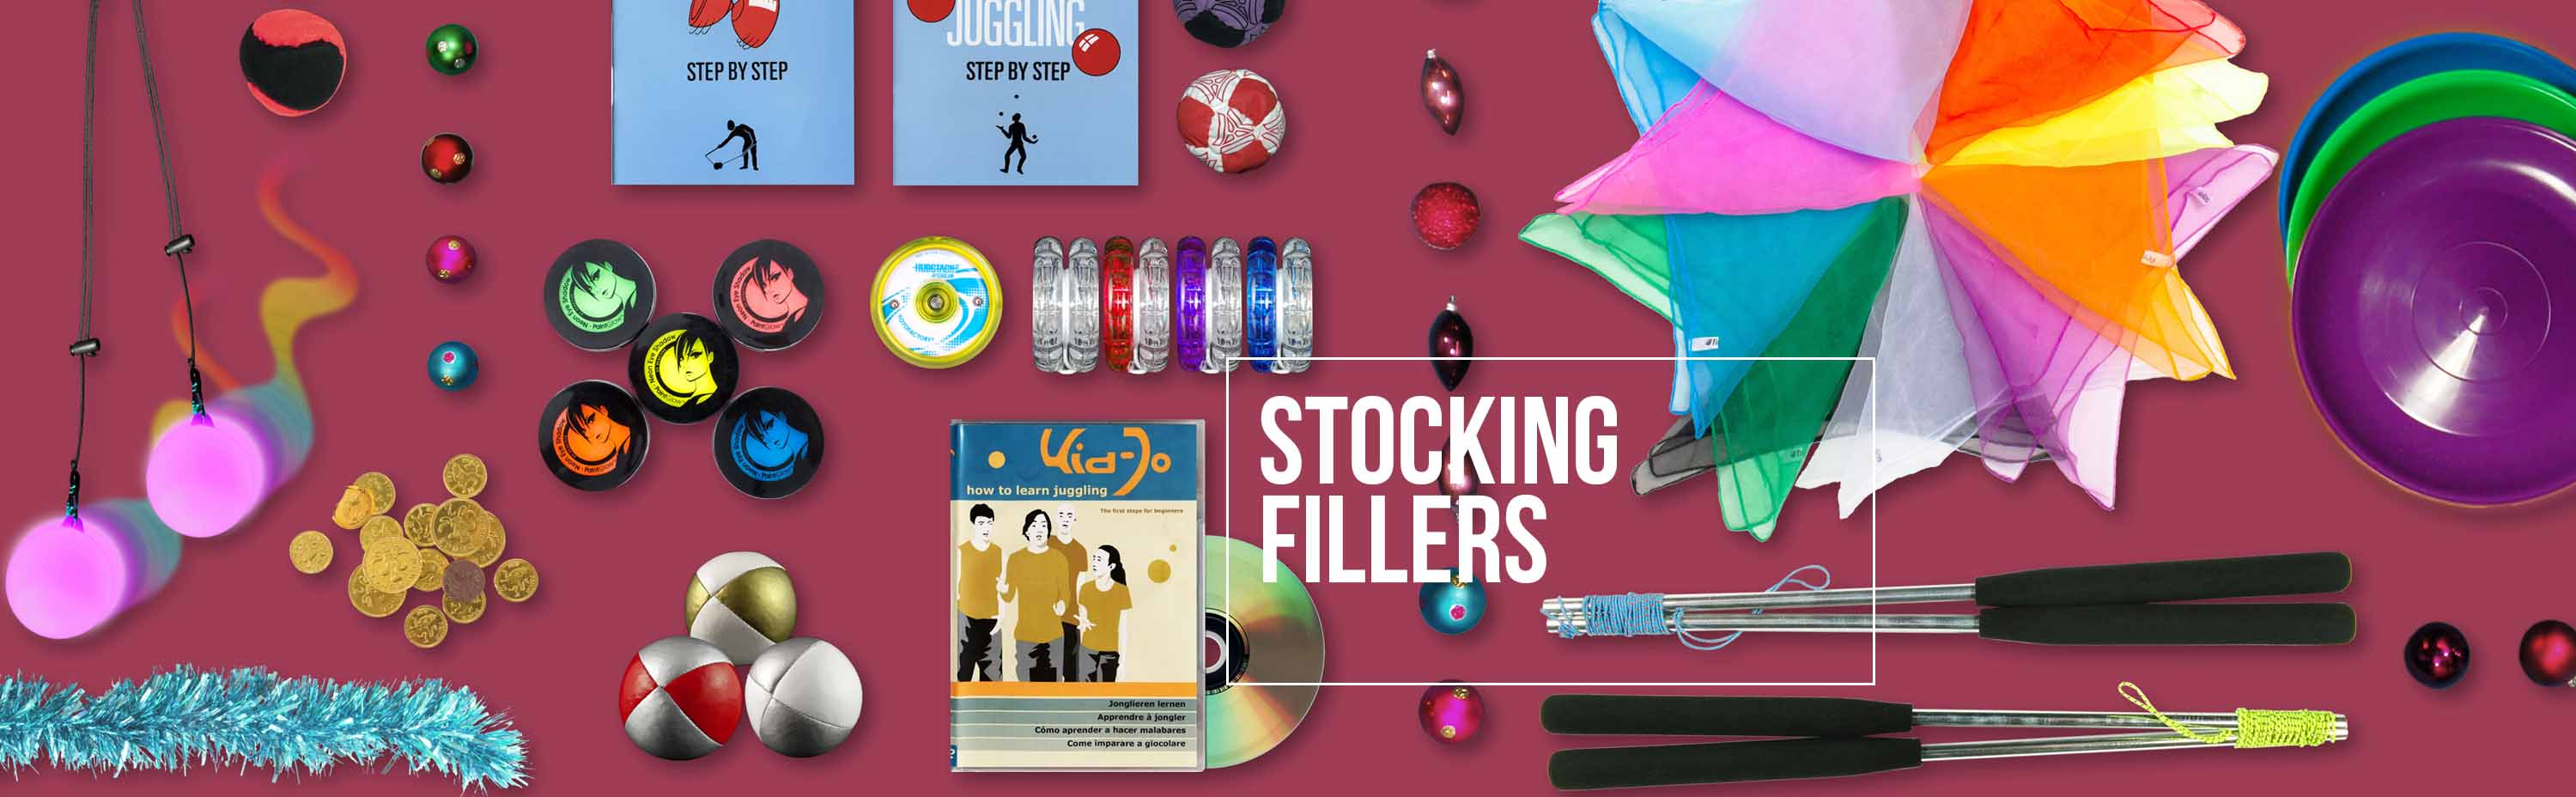 Stocking Fillers for All